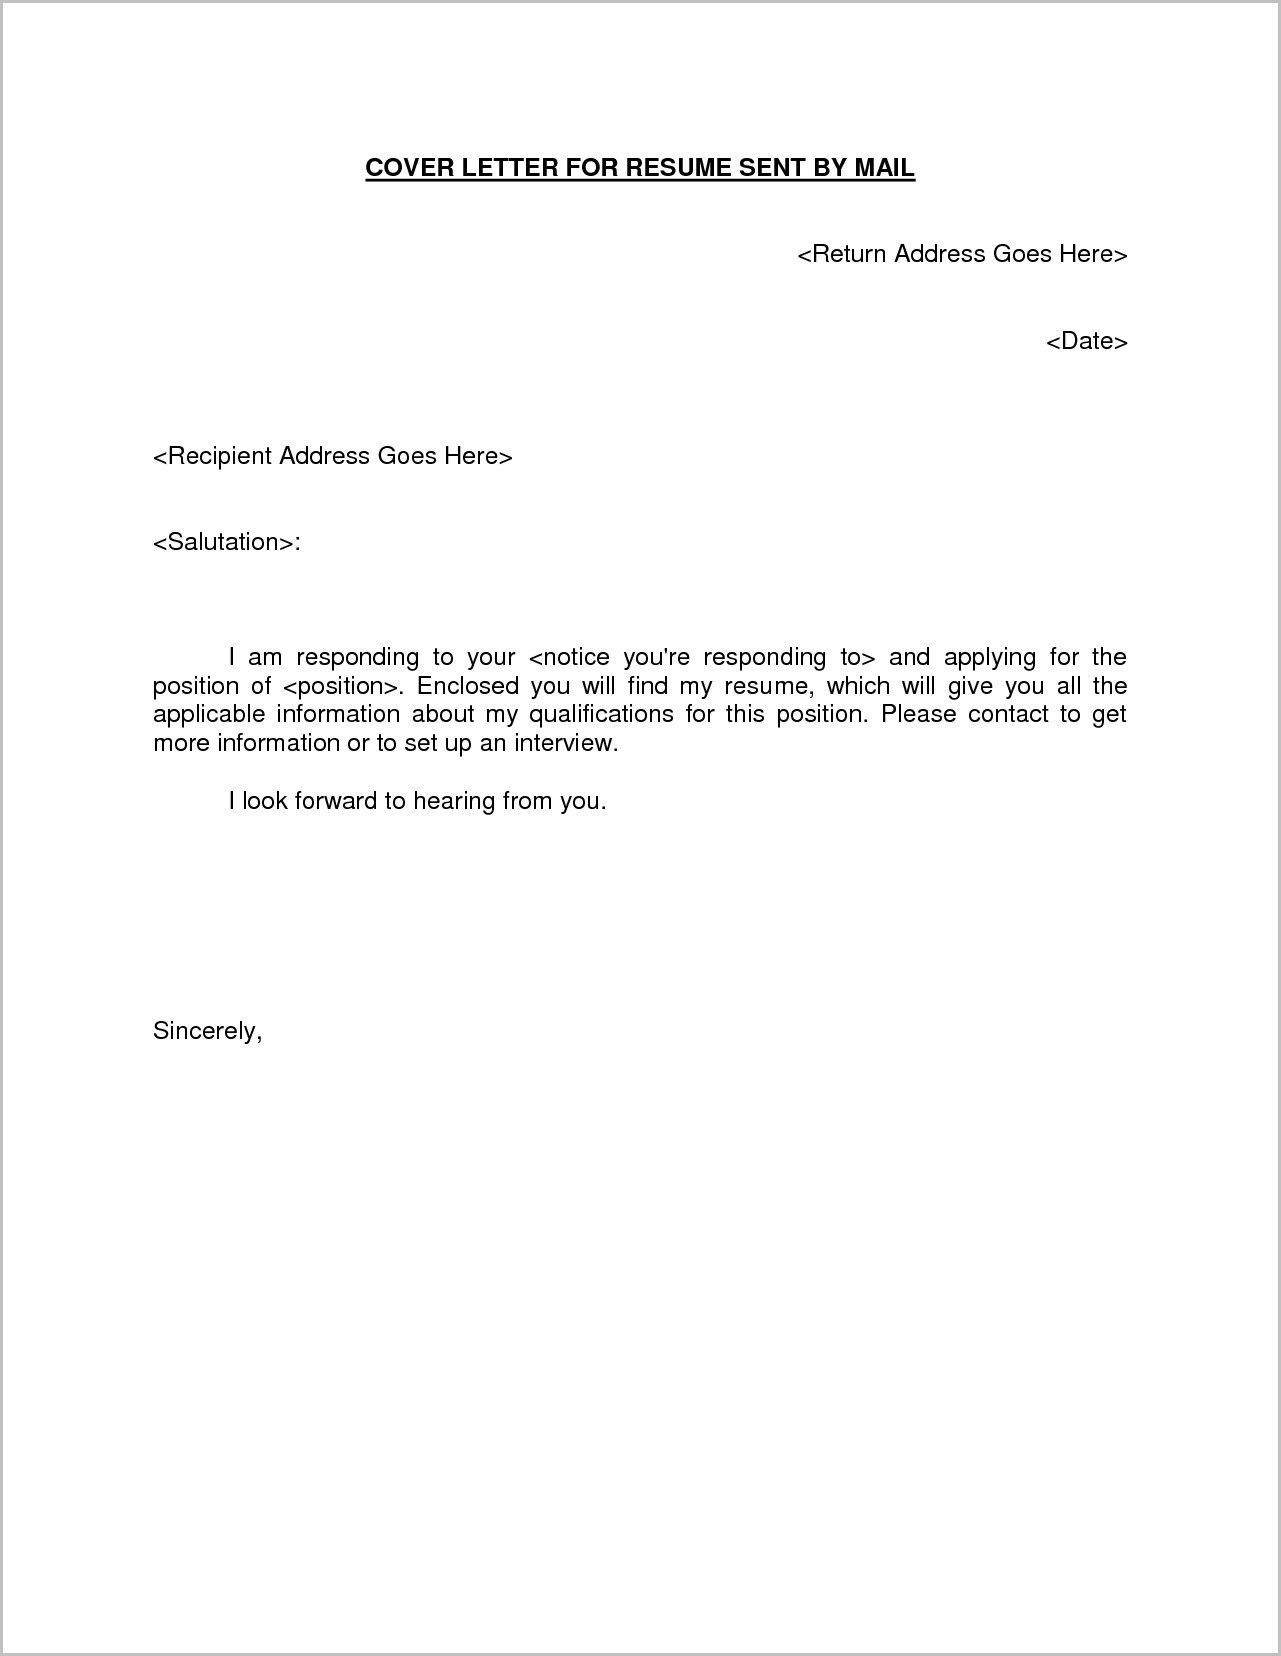 Sample Email Cover Letter For Resume 25 Email Cover Letter Sample Email Cover Letter Sample Email